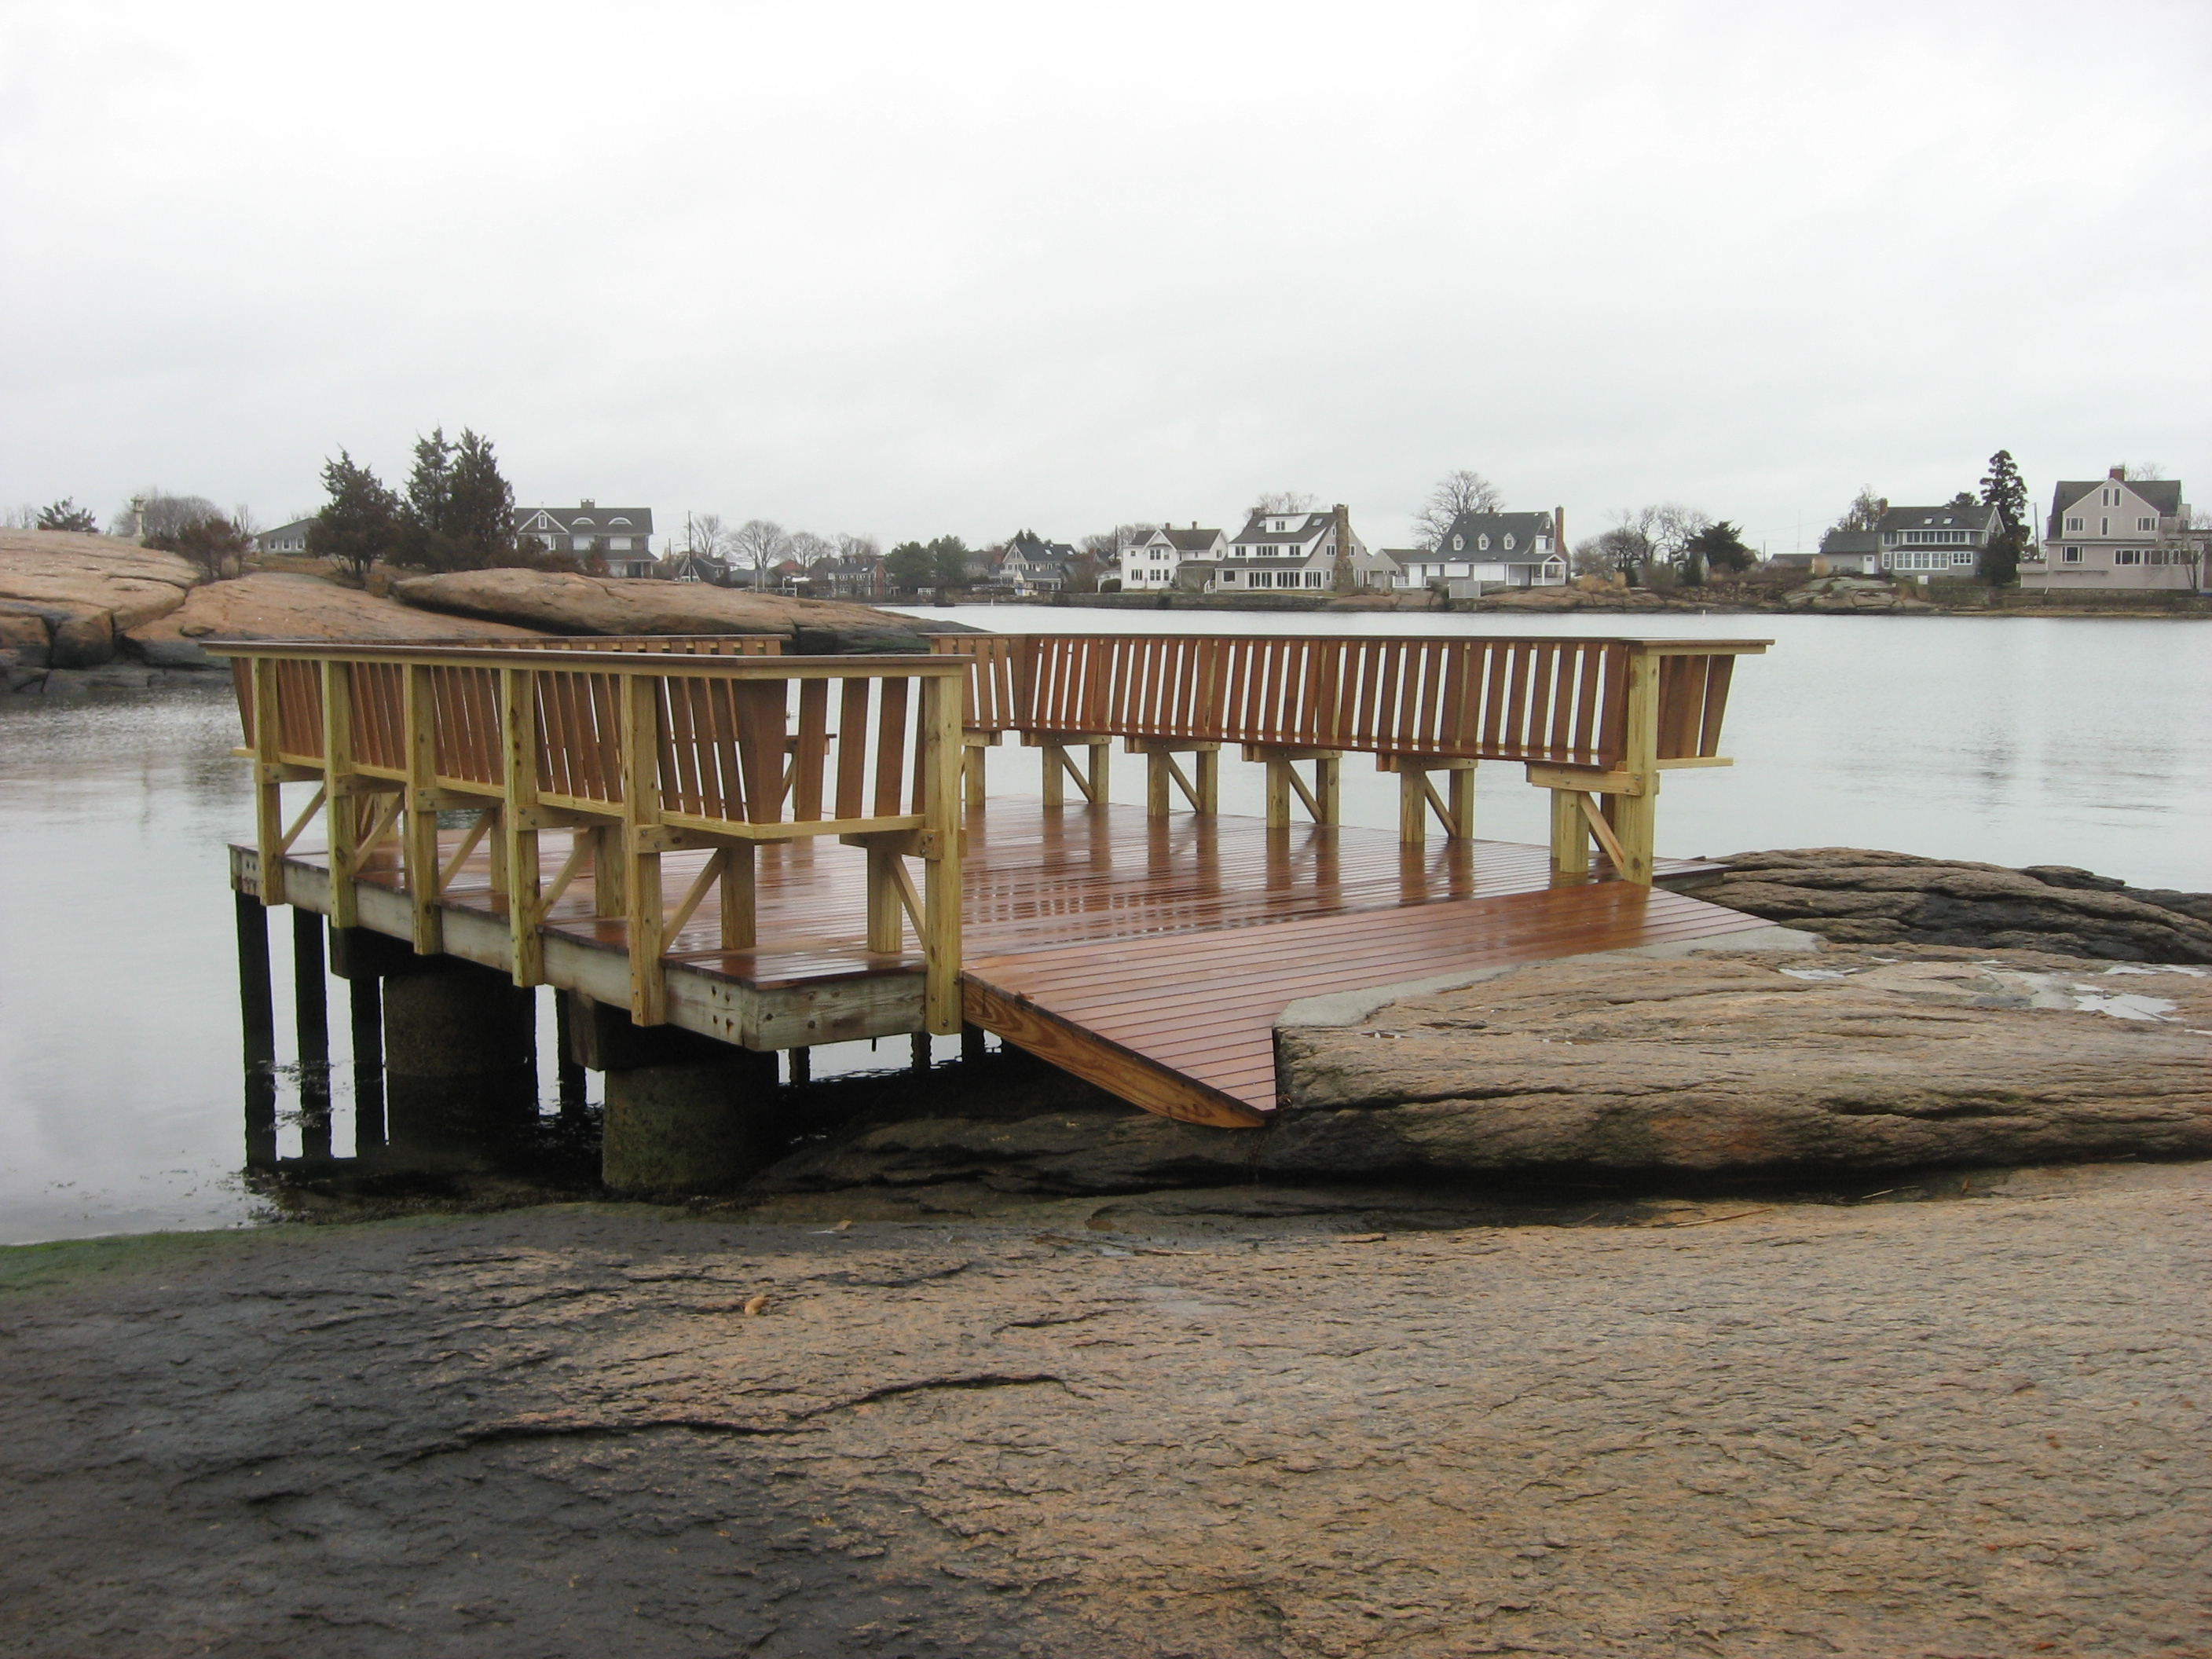 New dock seating